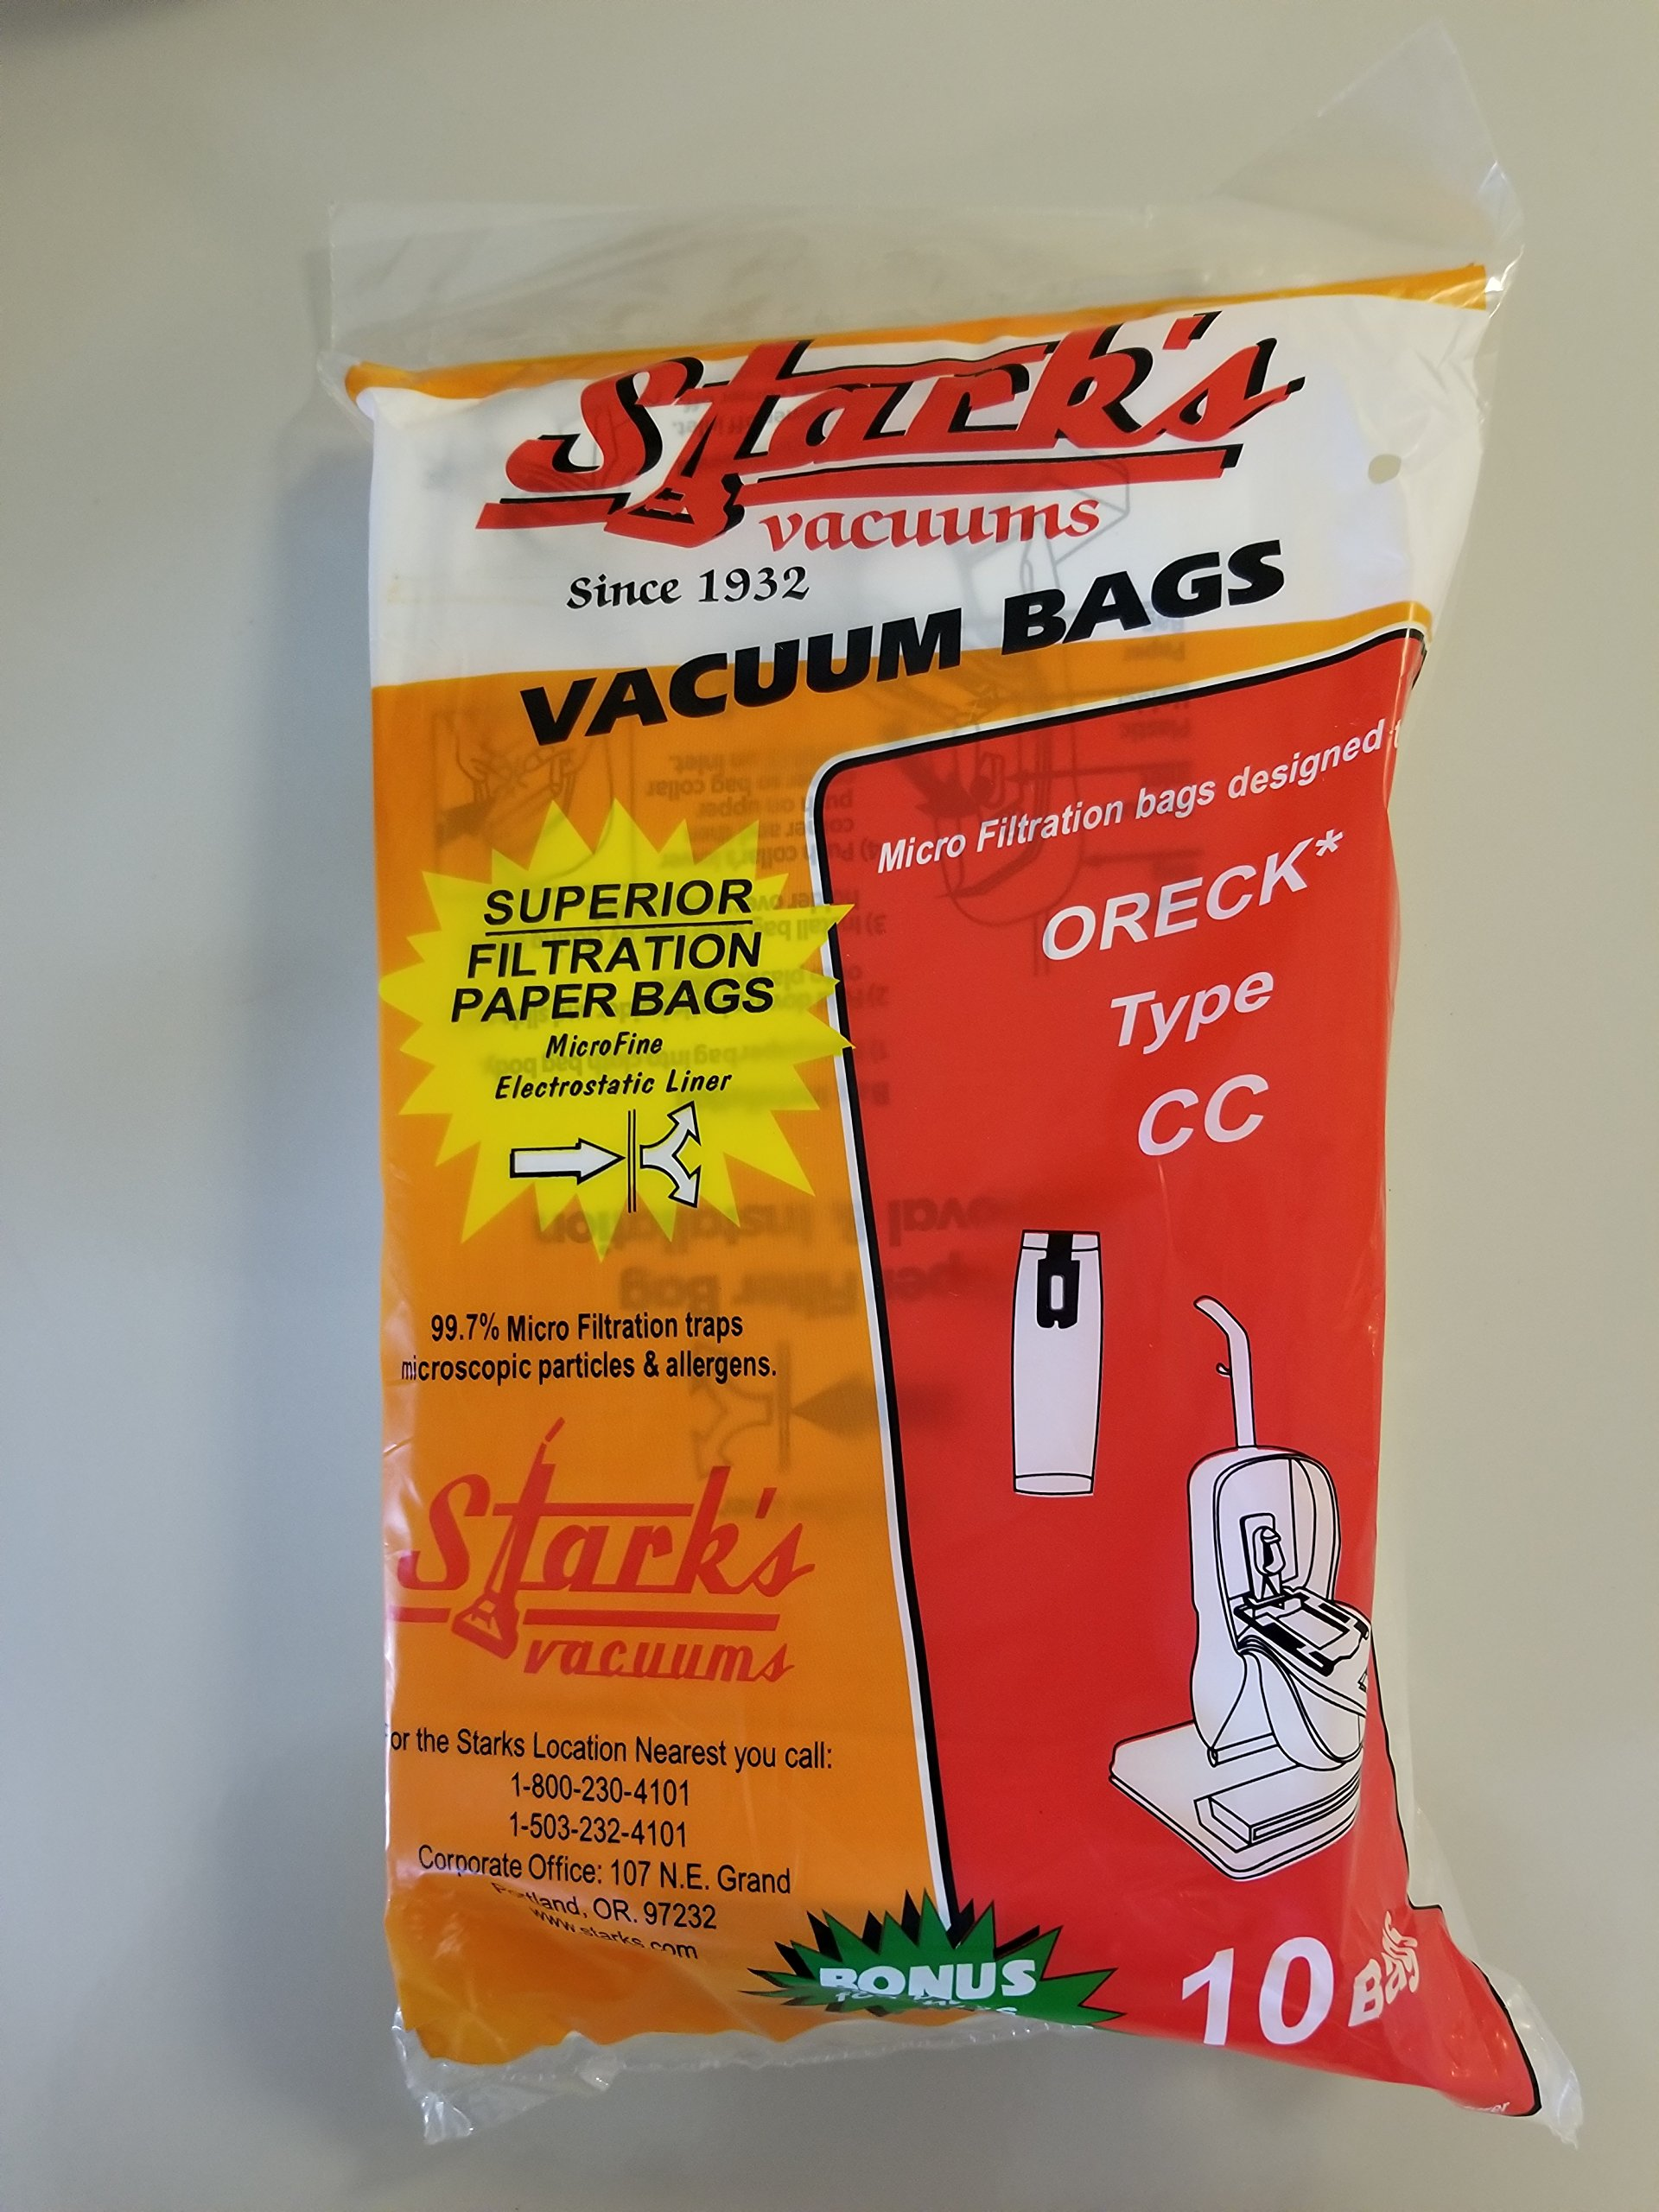 Stark's Vacuums Generic Oreck Vacuum Cleaner Bags To Fit Style CC, and all XL Upright Models 10 pk